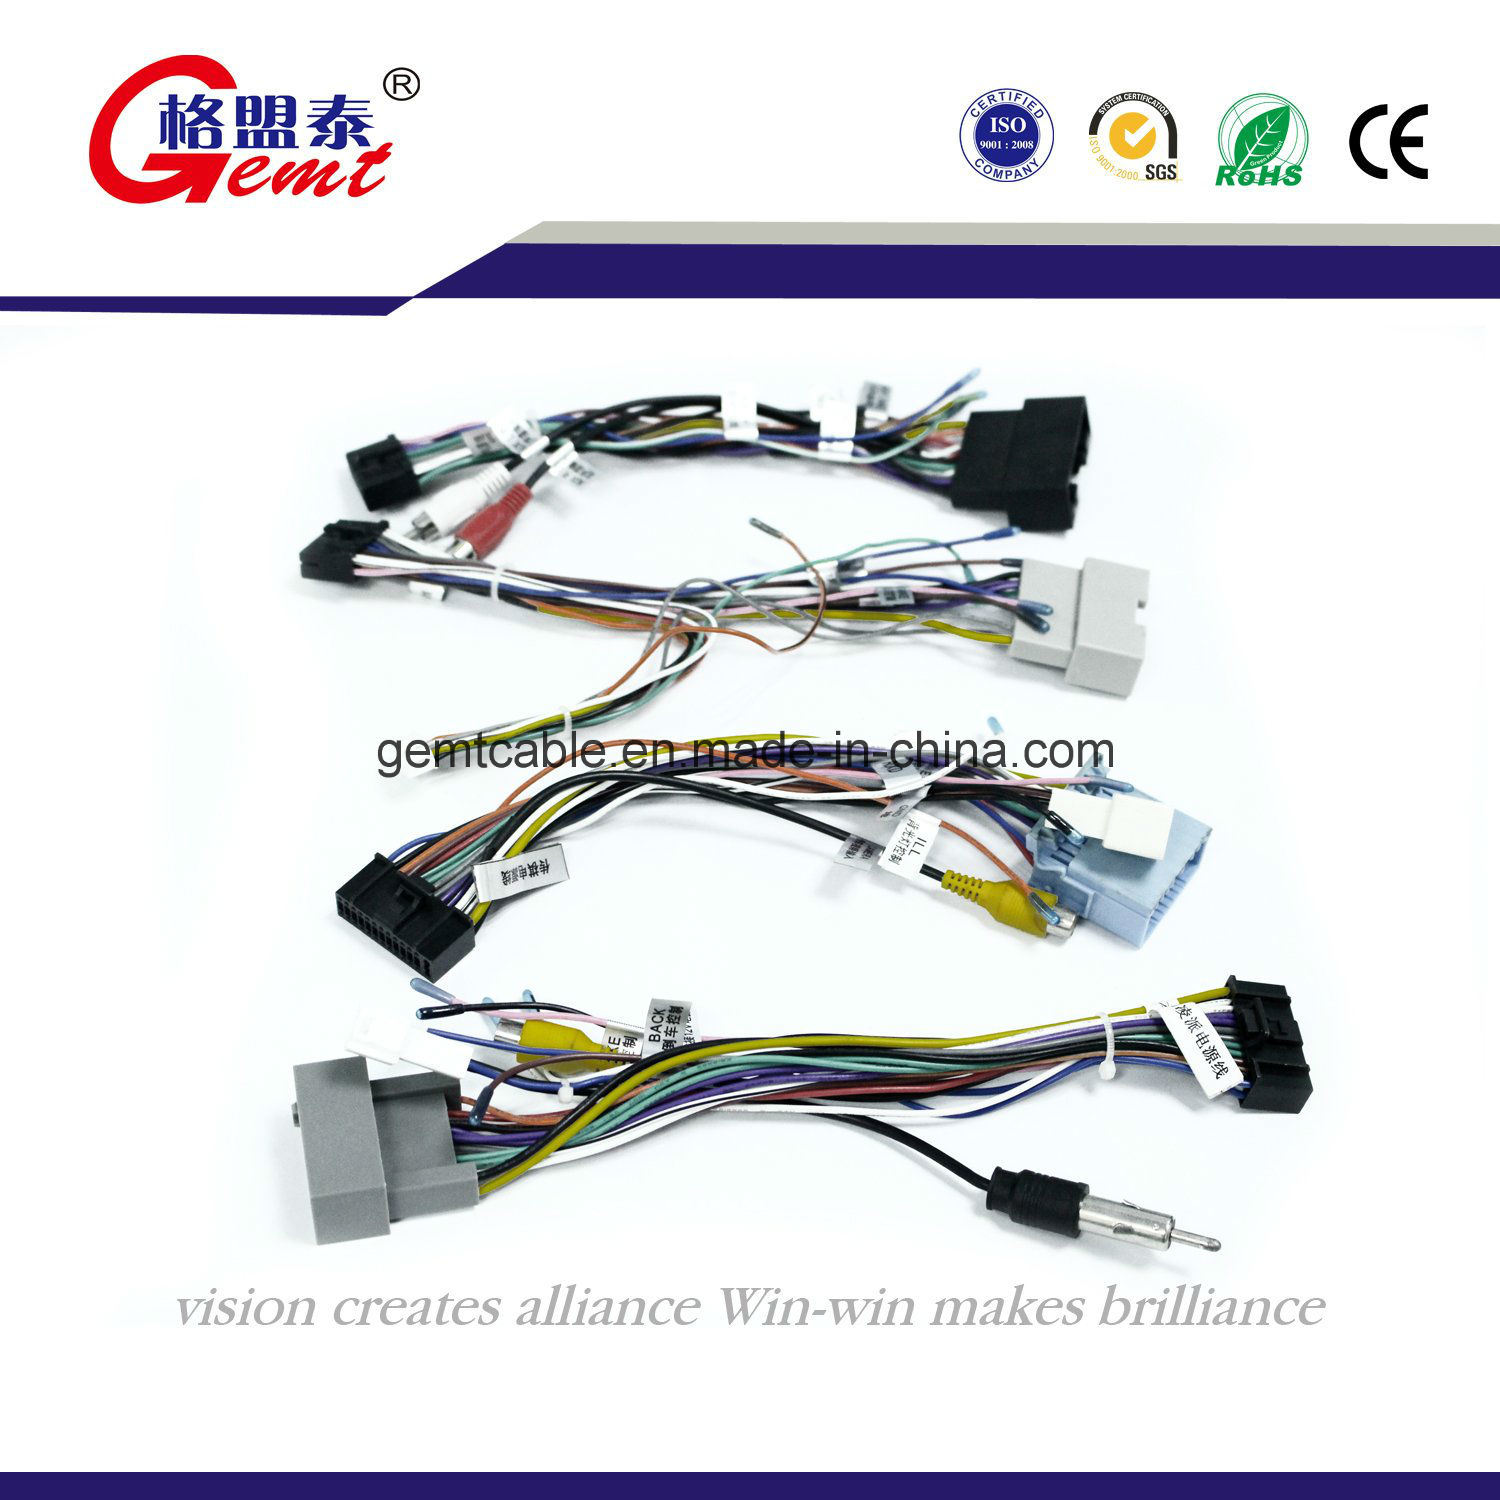 Custom Wiring Harness Manufacturer Library Manufacture China Produces Cable Assembly Wire